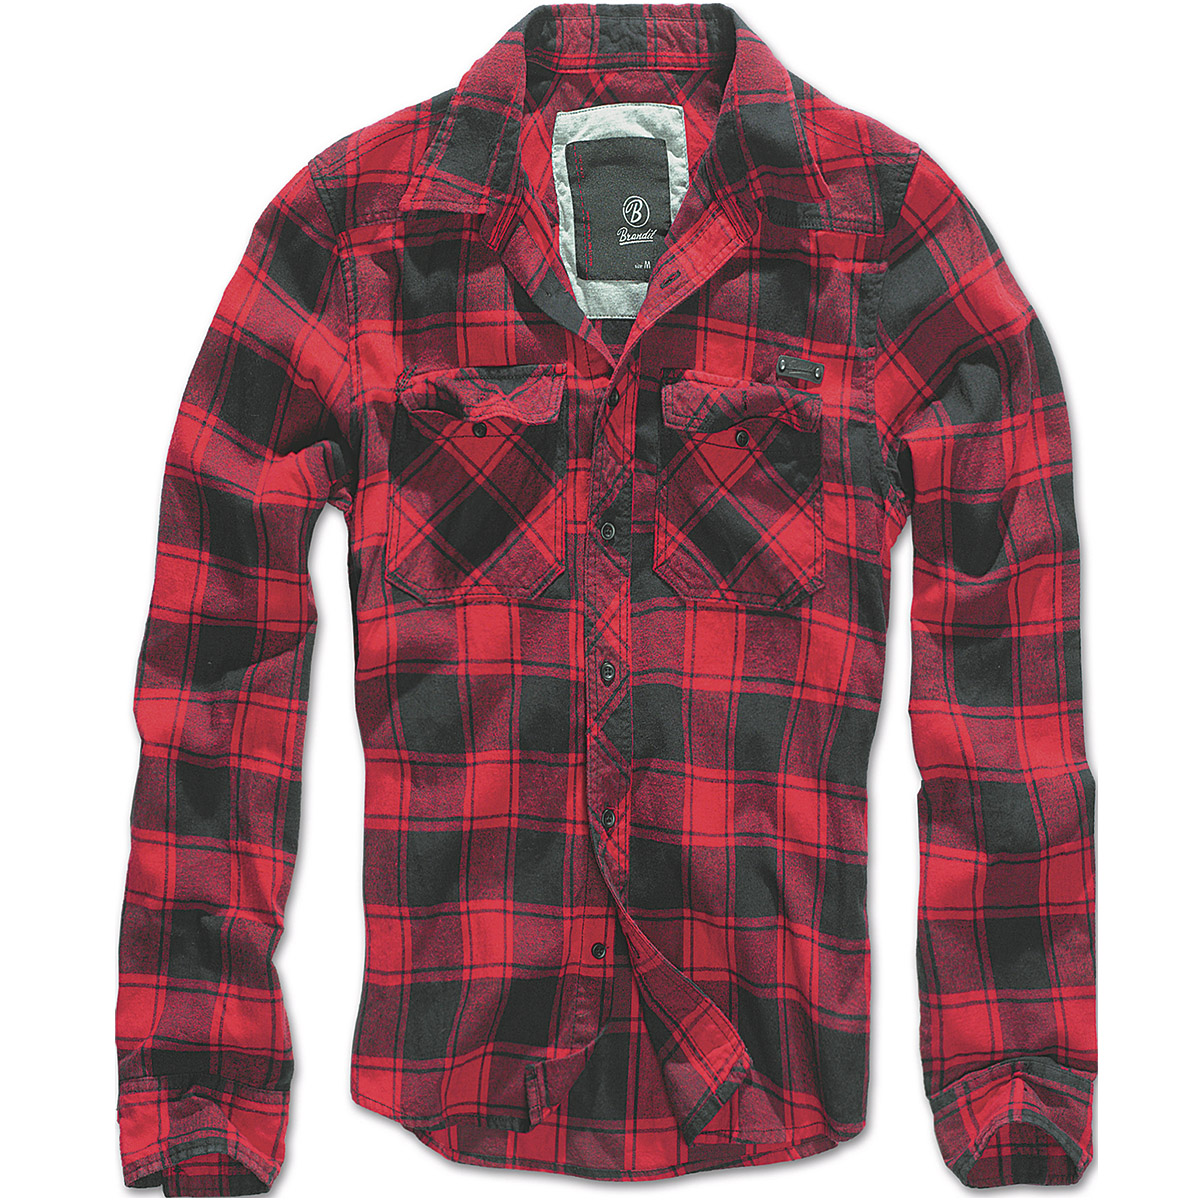 Shop for red plaid flannel shirts online at Target. Free shipping on purchases over $35 and save 5% every day with your Target REDcard.